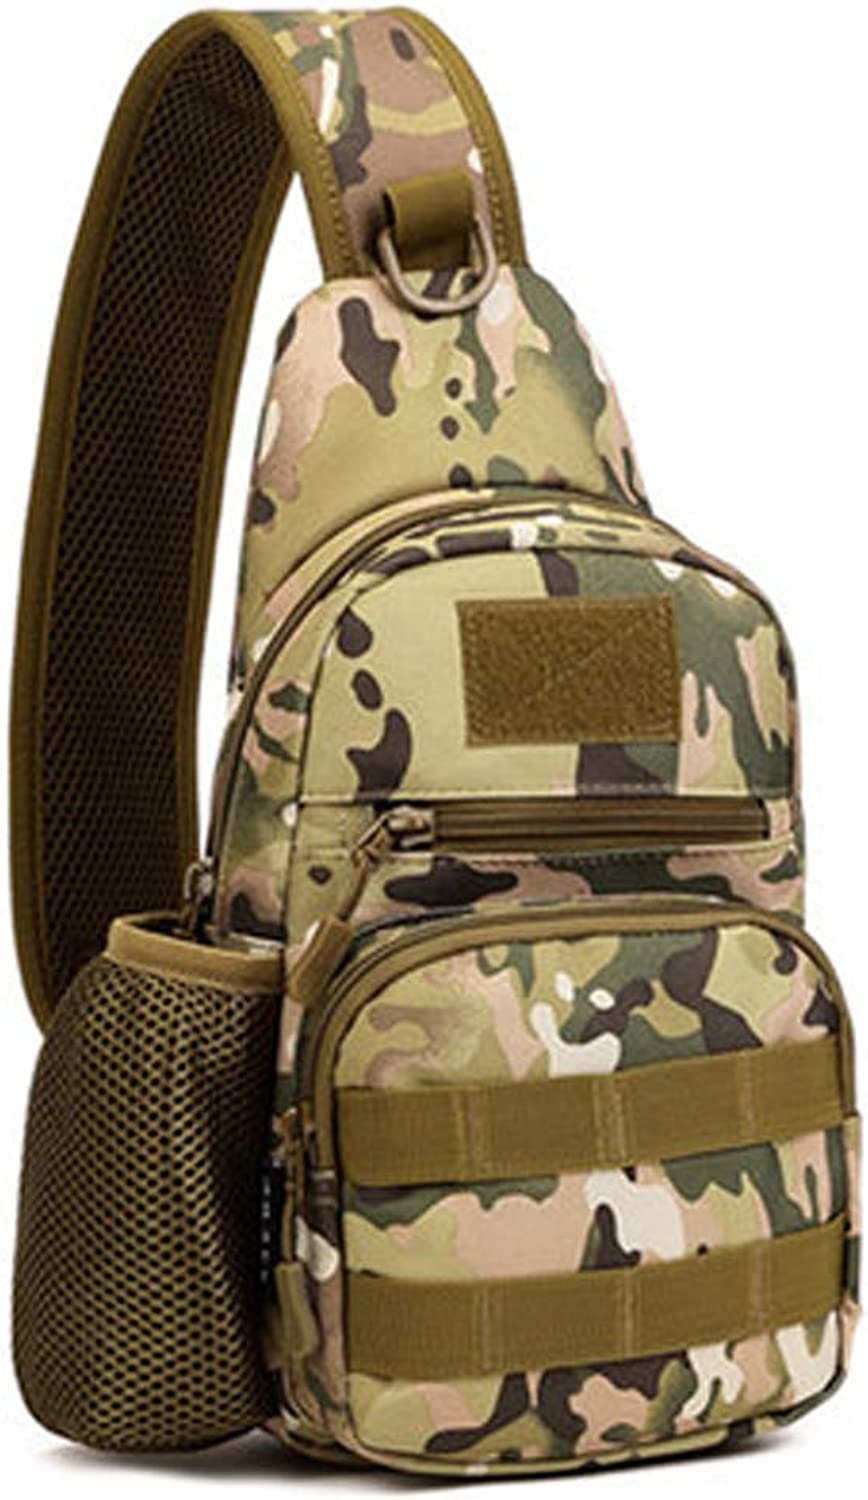 Camouflage Chest Bag, Outdoor Riding Shoulder Bag with Kettle Cover 20L Hiking Camping Casual Men's Bag Tactical Camouflage Small Multi Function Waterproof Backpack (color   Camouflage)